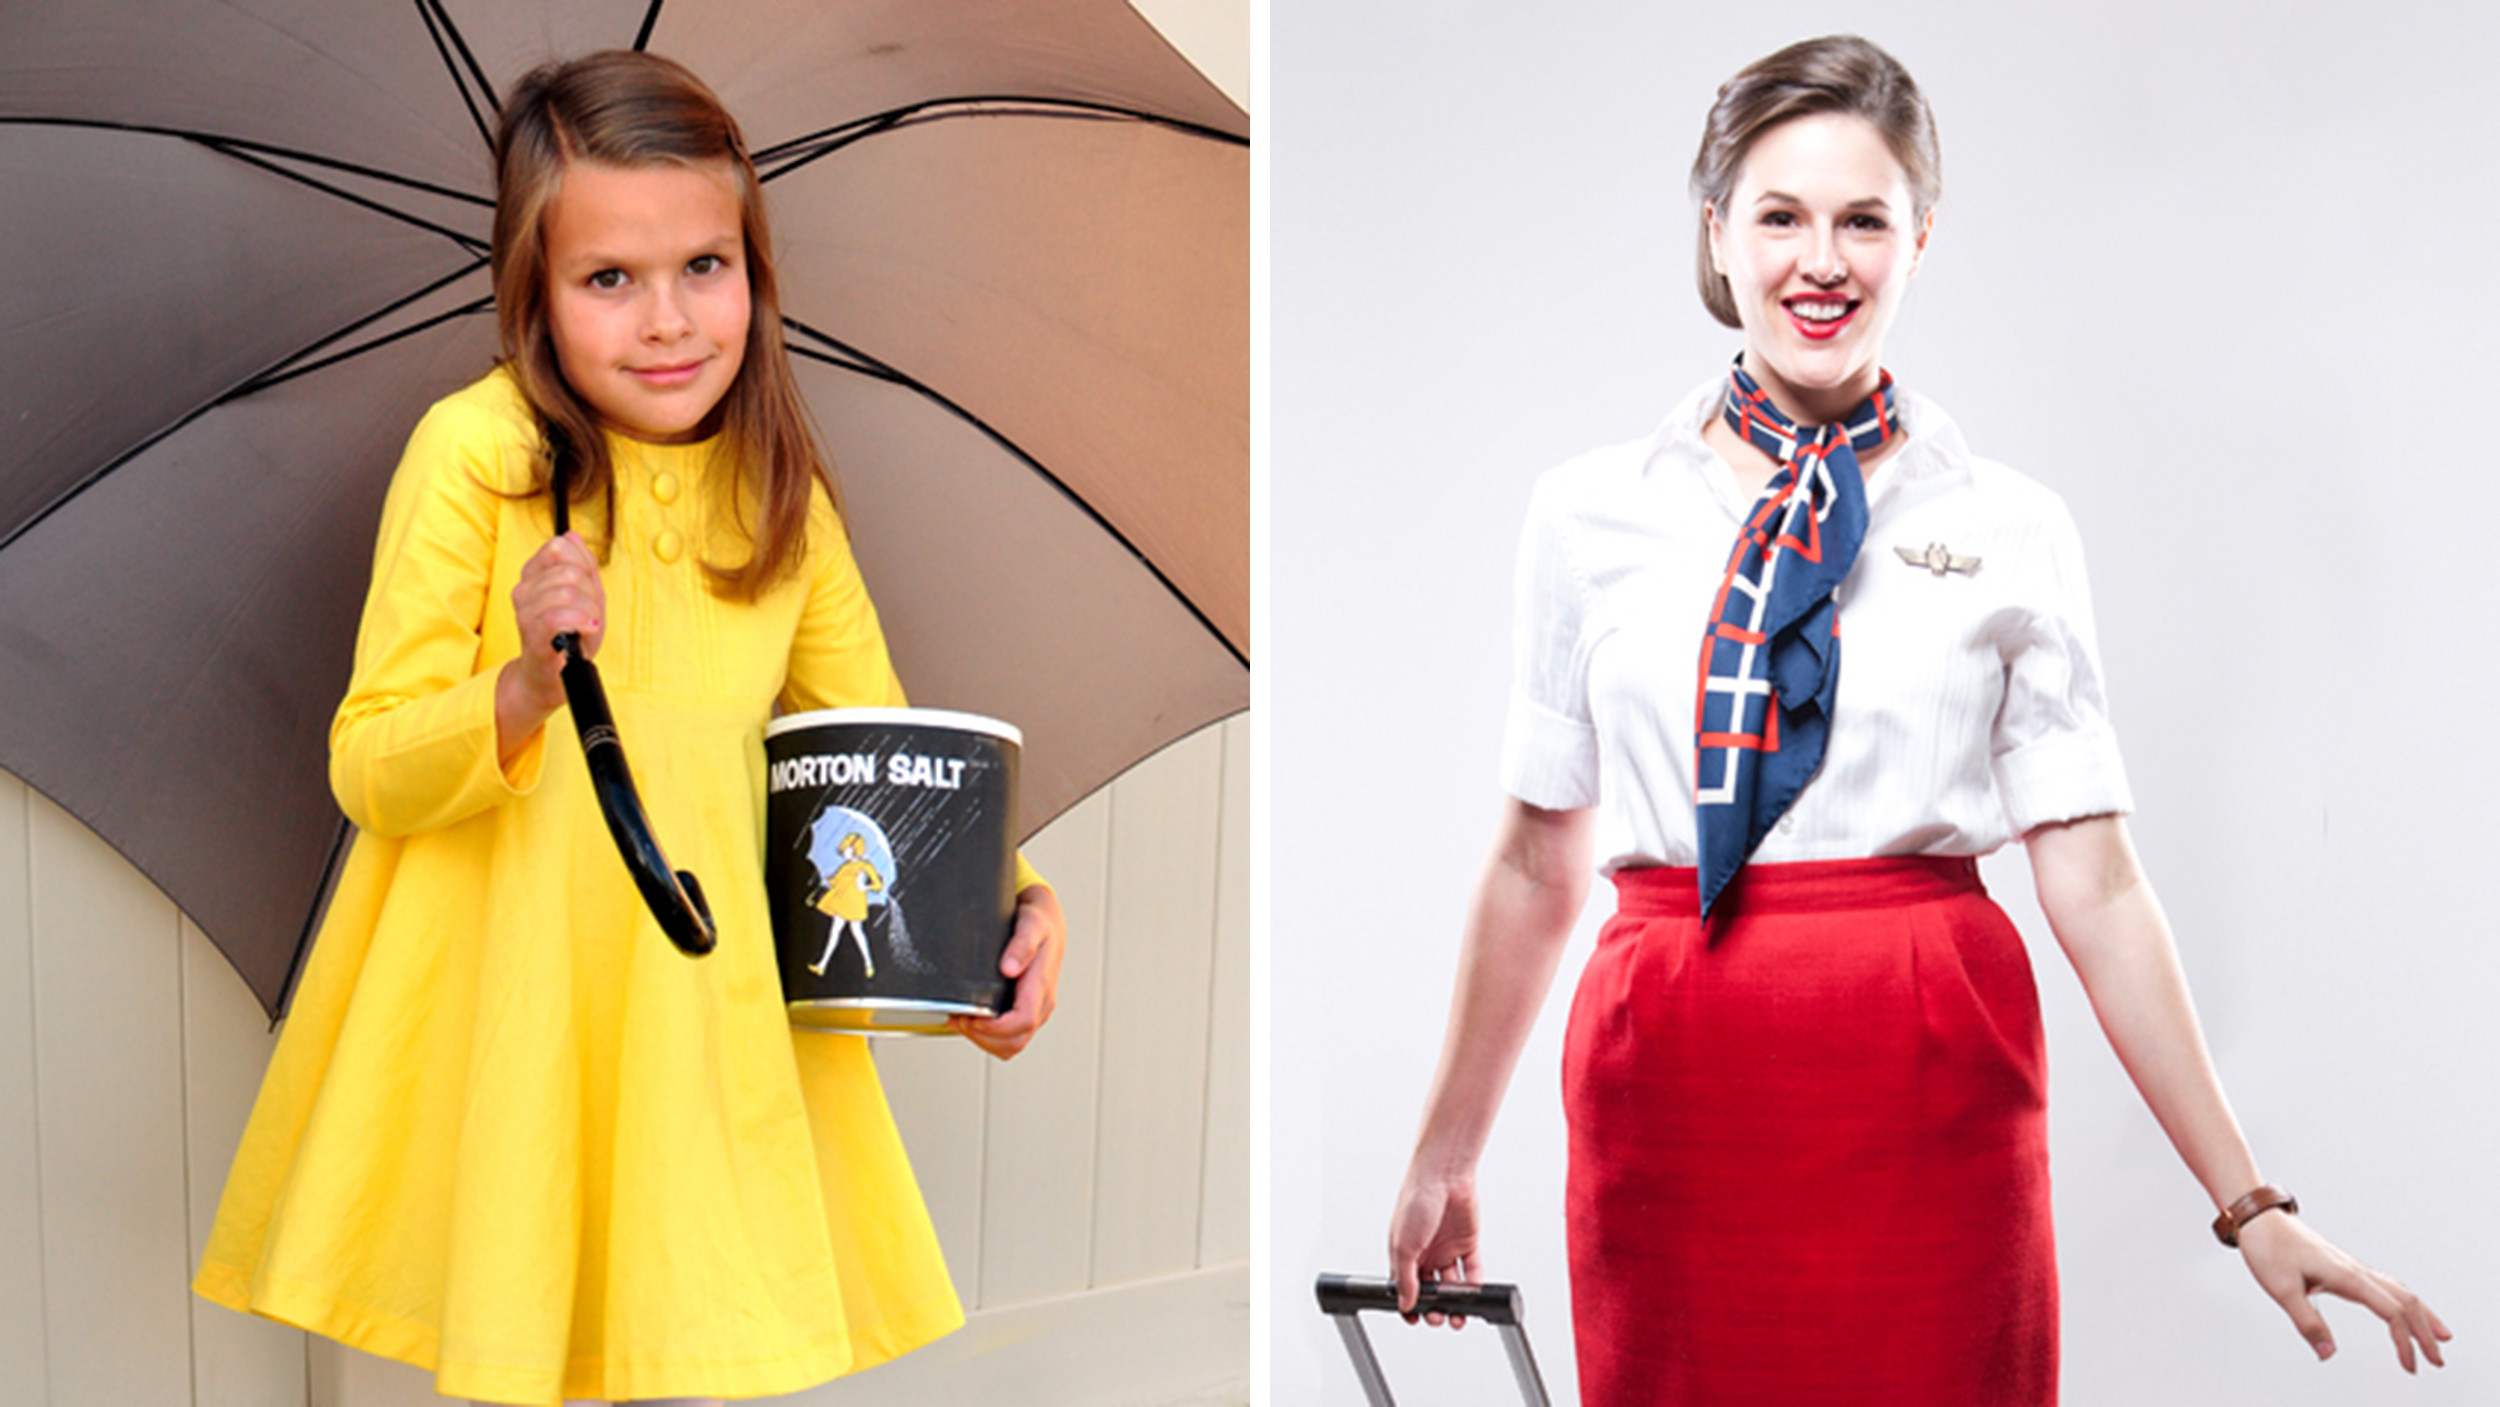 Last Minute DIY Halloween Costumes For Adults  Last minute Halloween DIY costumes for busy parents